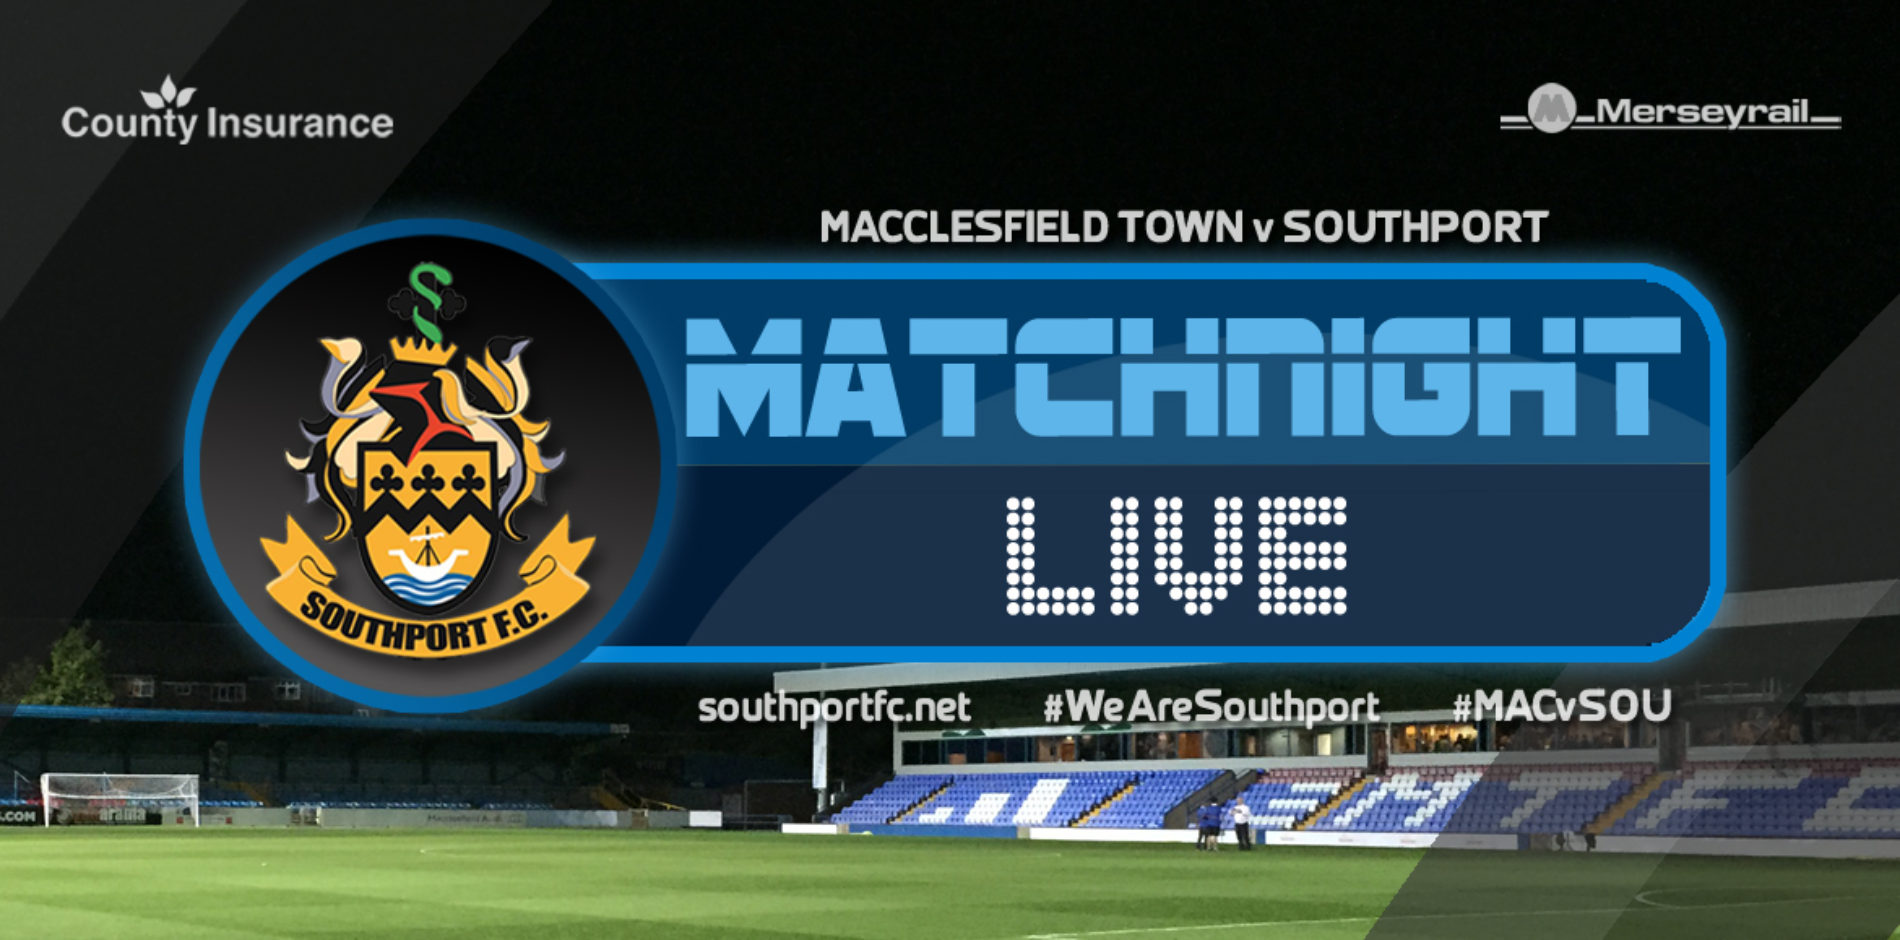 MATCHDAY LIVE   Macclesfield Town 3 – 1 Southport